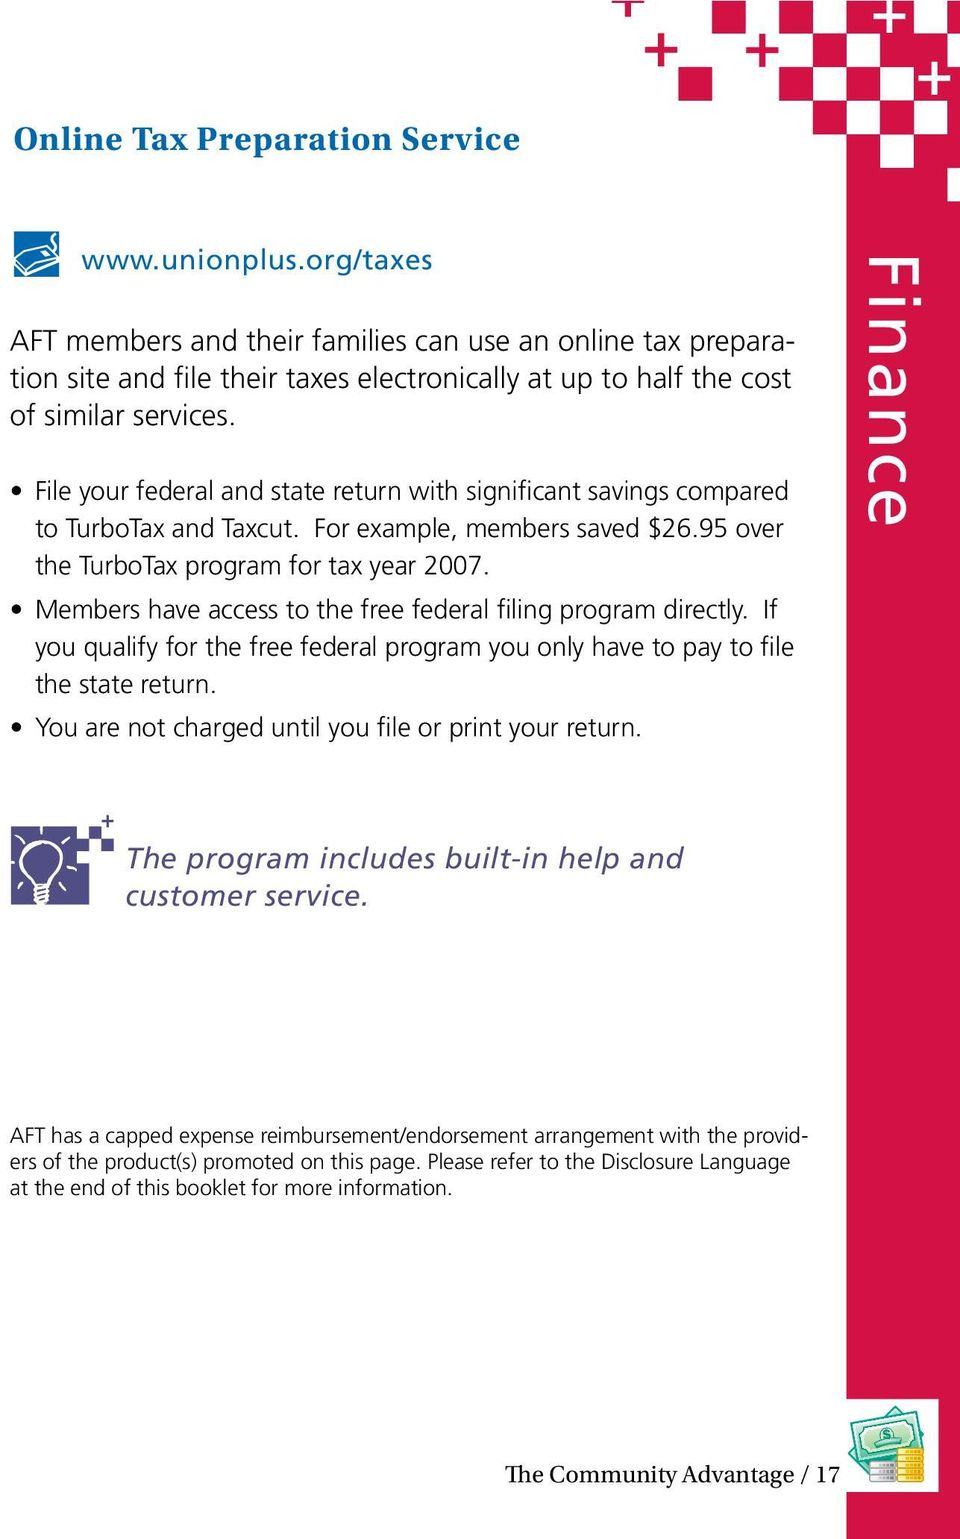 File your federal and state return with significant savings compared to TurboTax and Taxcut. For example, members saved $26.95 over the TurboTax program for tax year 2007.